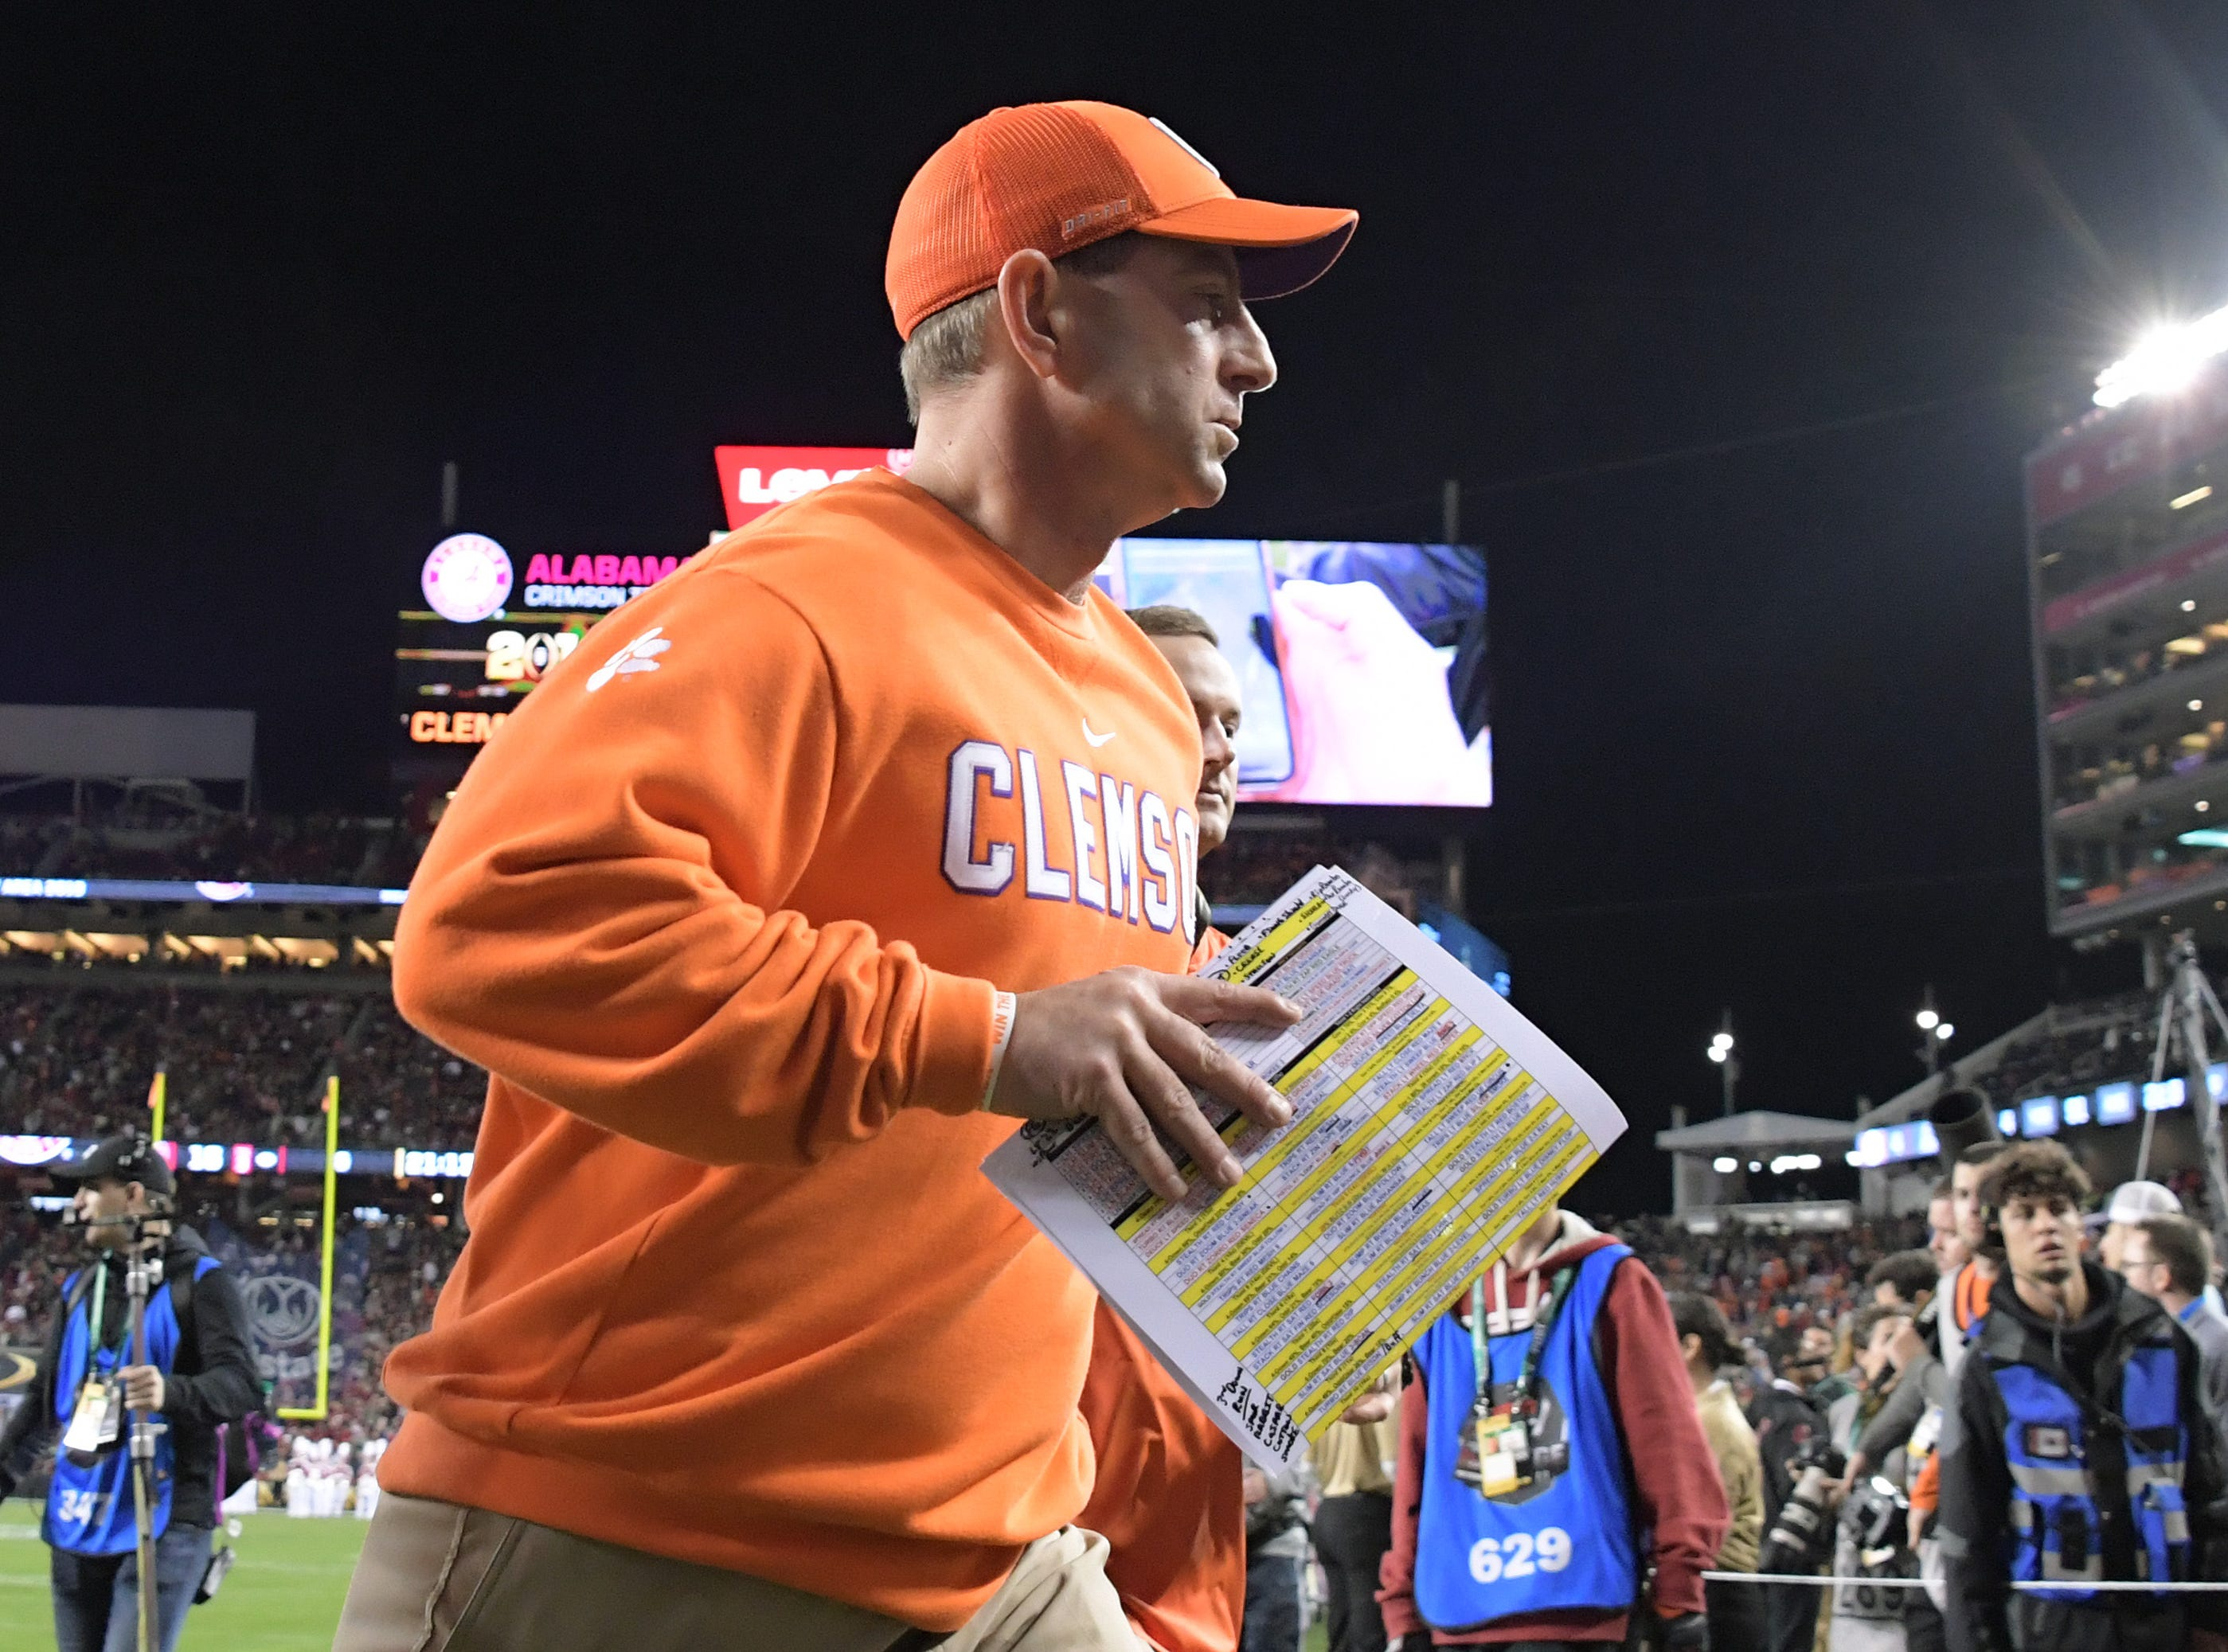 Jan 7, 2019; Santa Clara, CA, USA; Clemson Tigers head coach Dabo Swinney leaves the field after the end of the first half against the Alabama Crimson Tide during the 2019 College Football Playoff Championship game at Levi's Stadium. Mandatory Credit: Kirby Lee-USA TODAY Sports